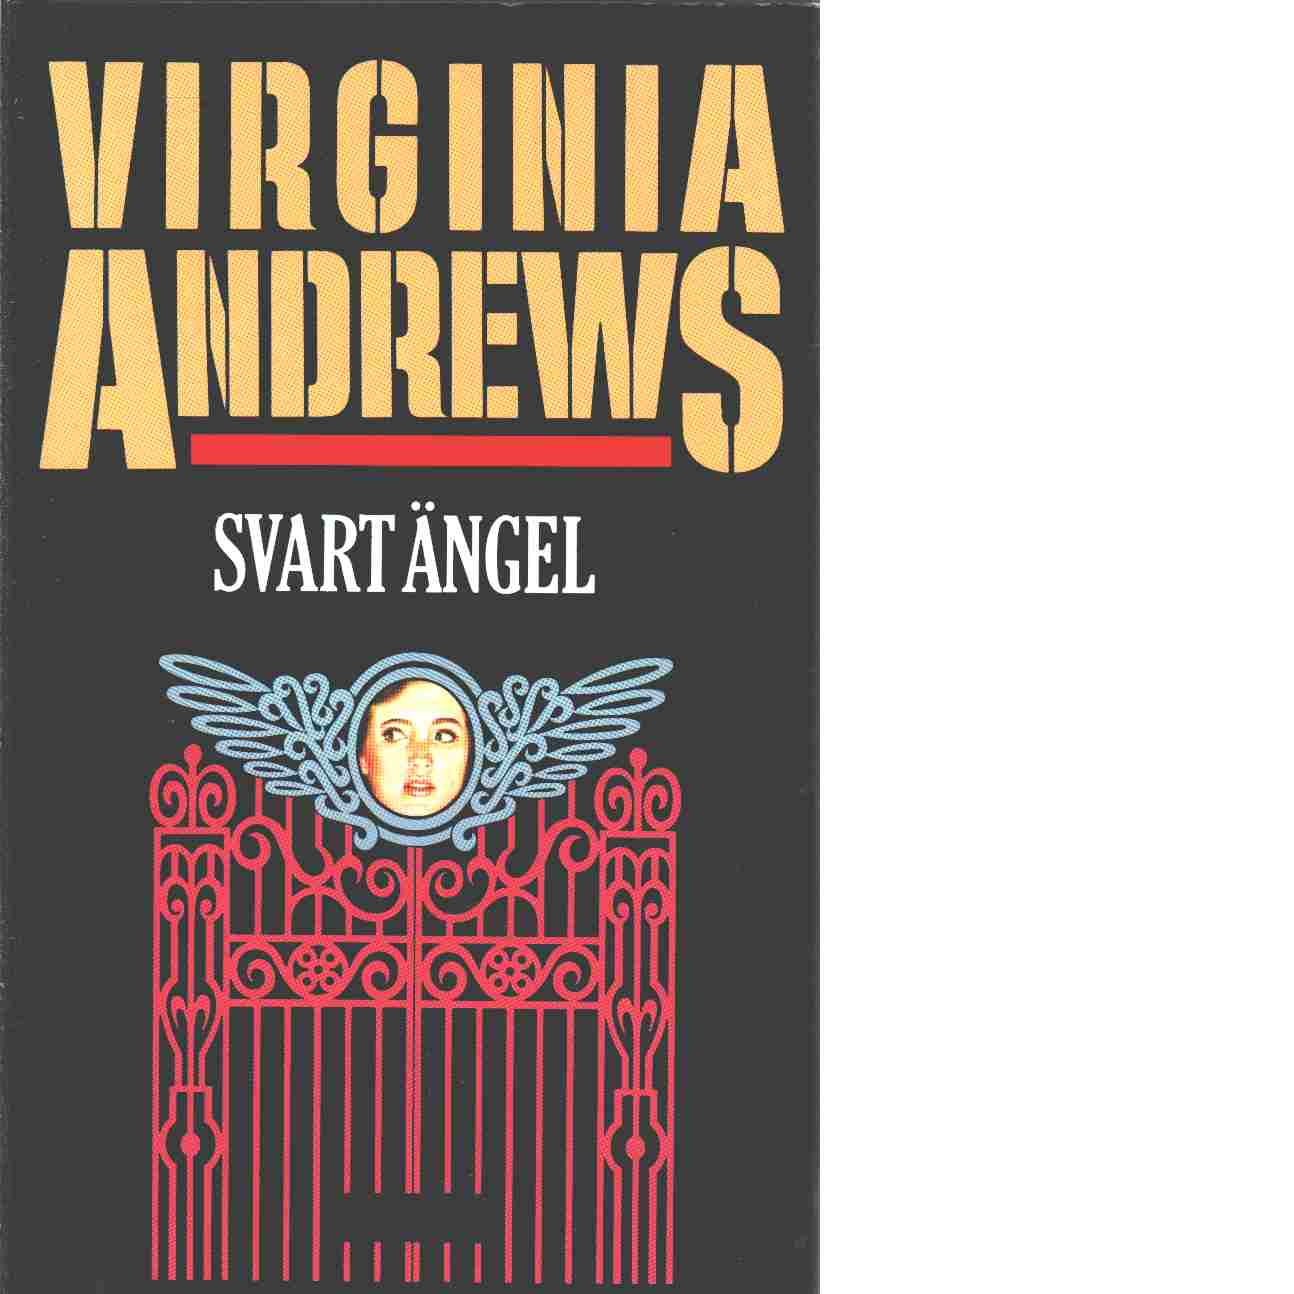 Svart ängel - Andrews, Virginia